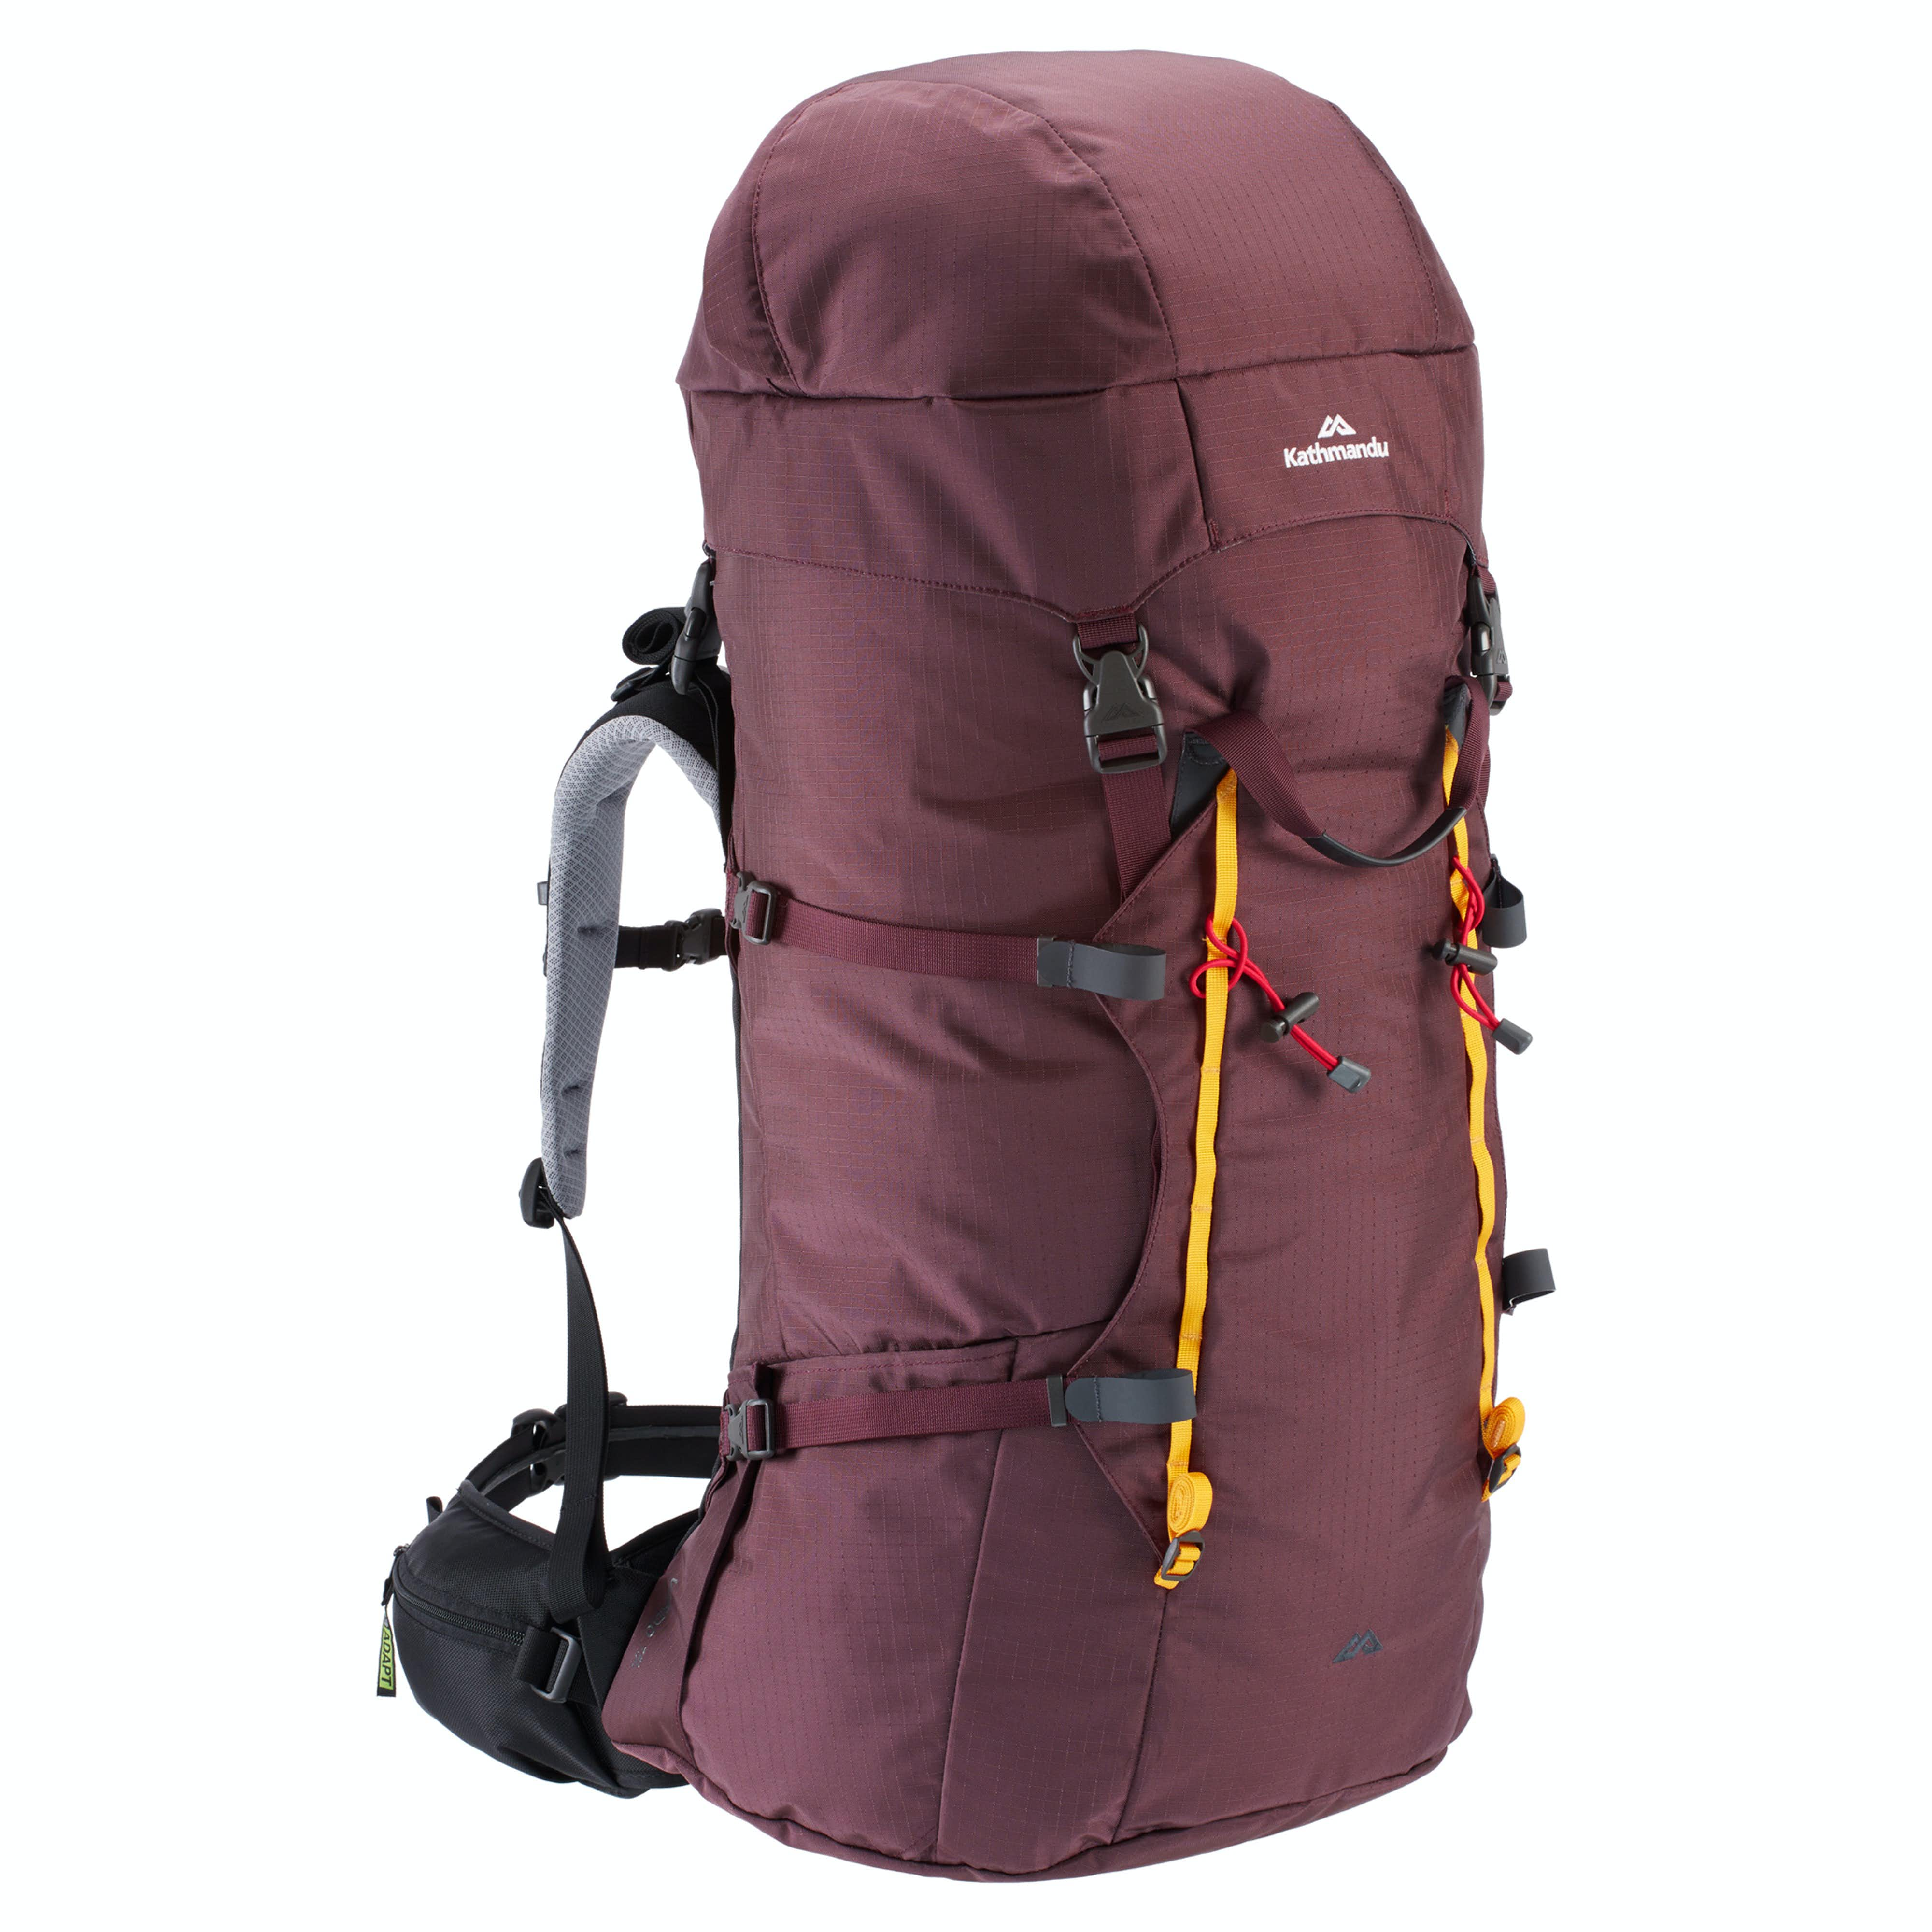 b710314b7f6c Hiking & Camping Bags | Outdoor Bag for Sale Online | Kathmandu AU